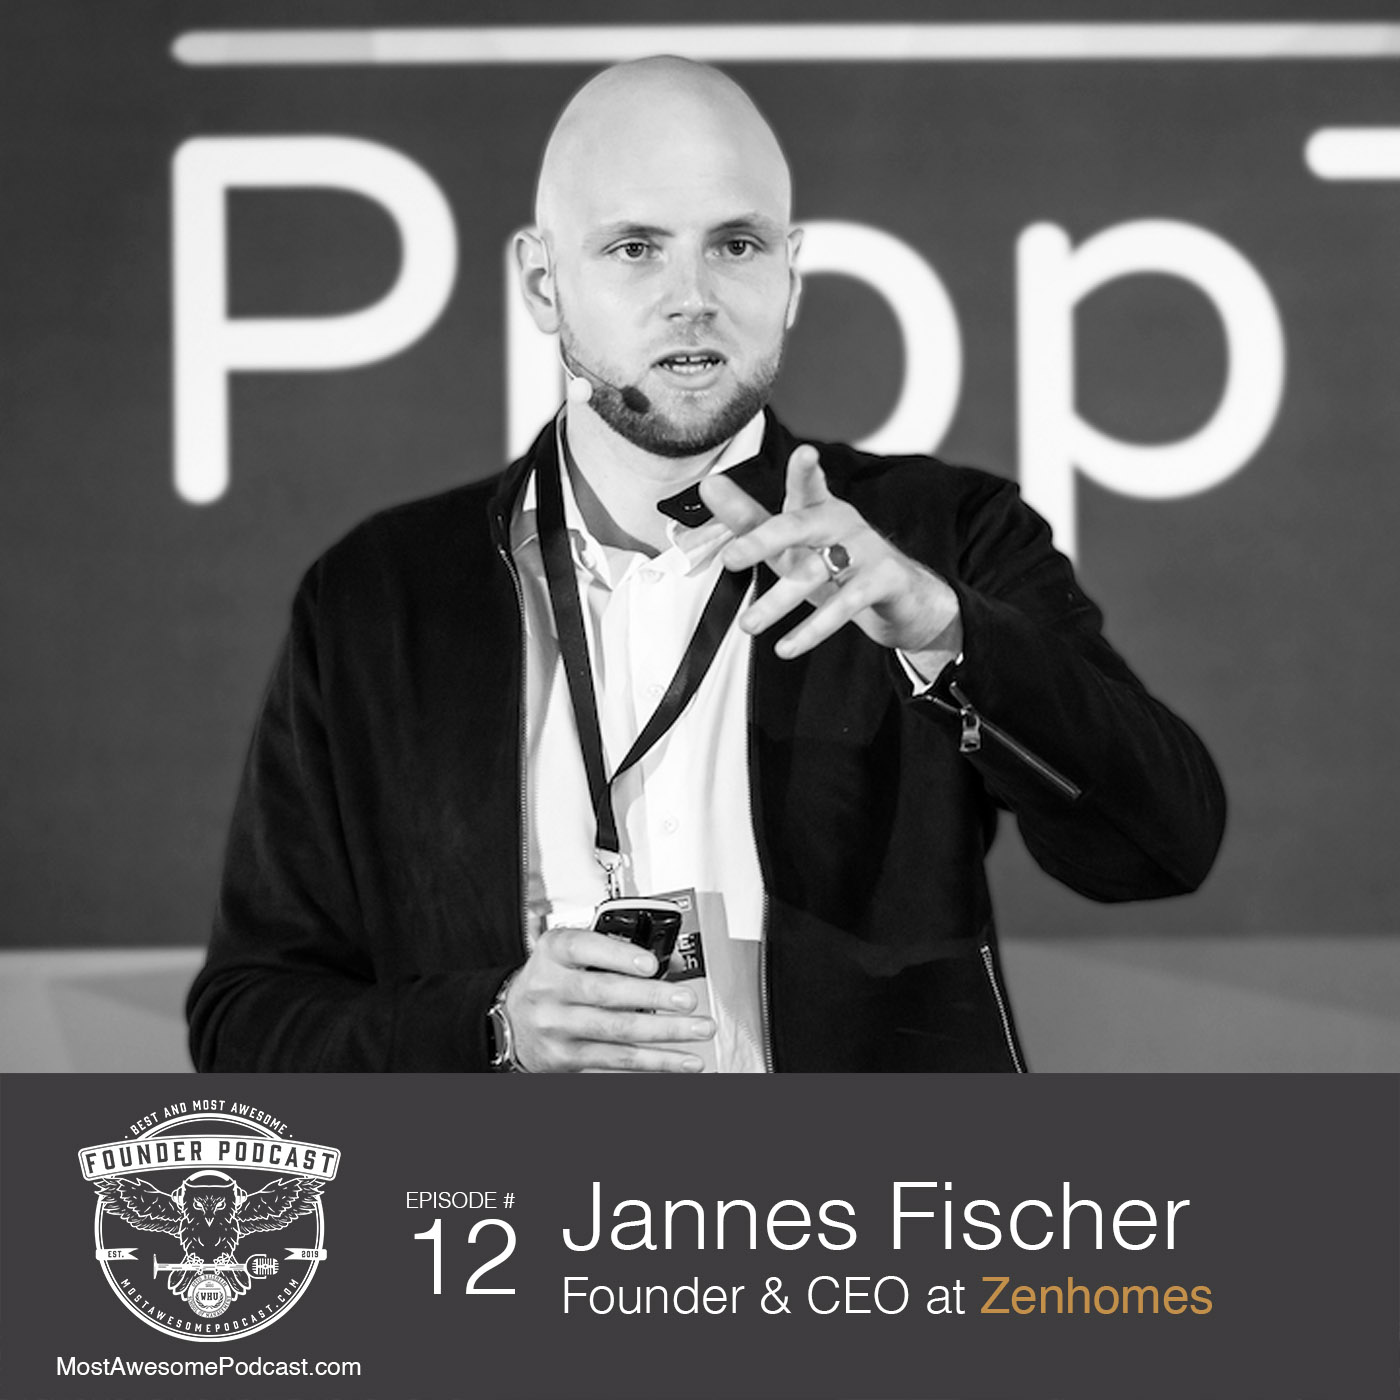 Ep. 12 - Starting From a Problem with Jannes Fischer